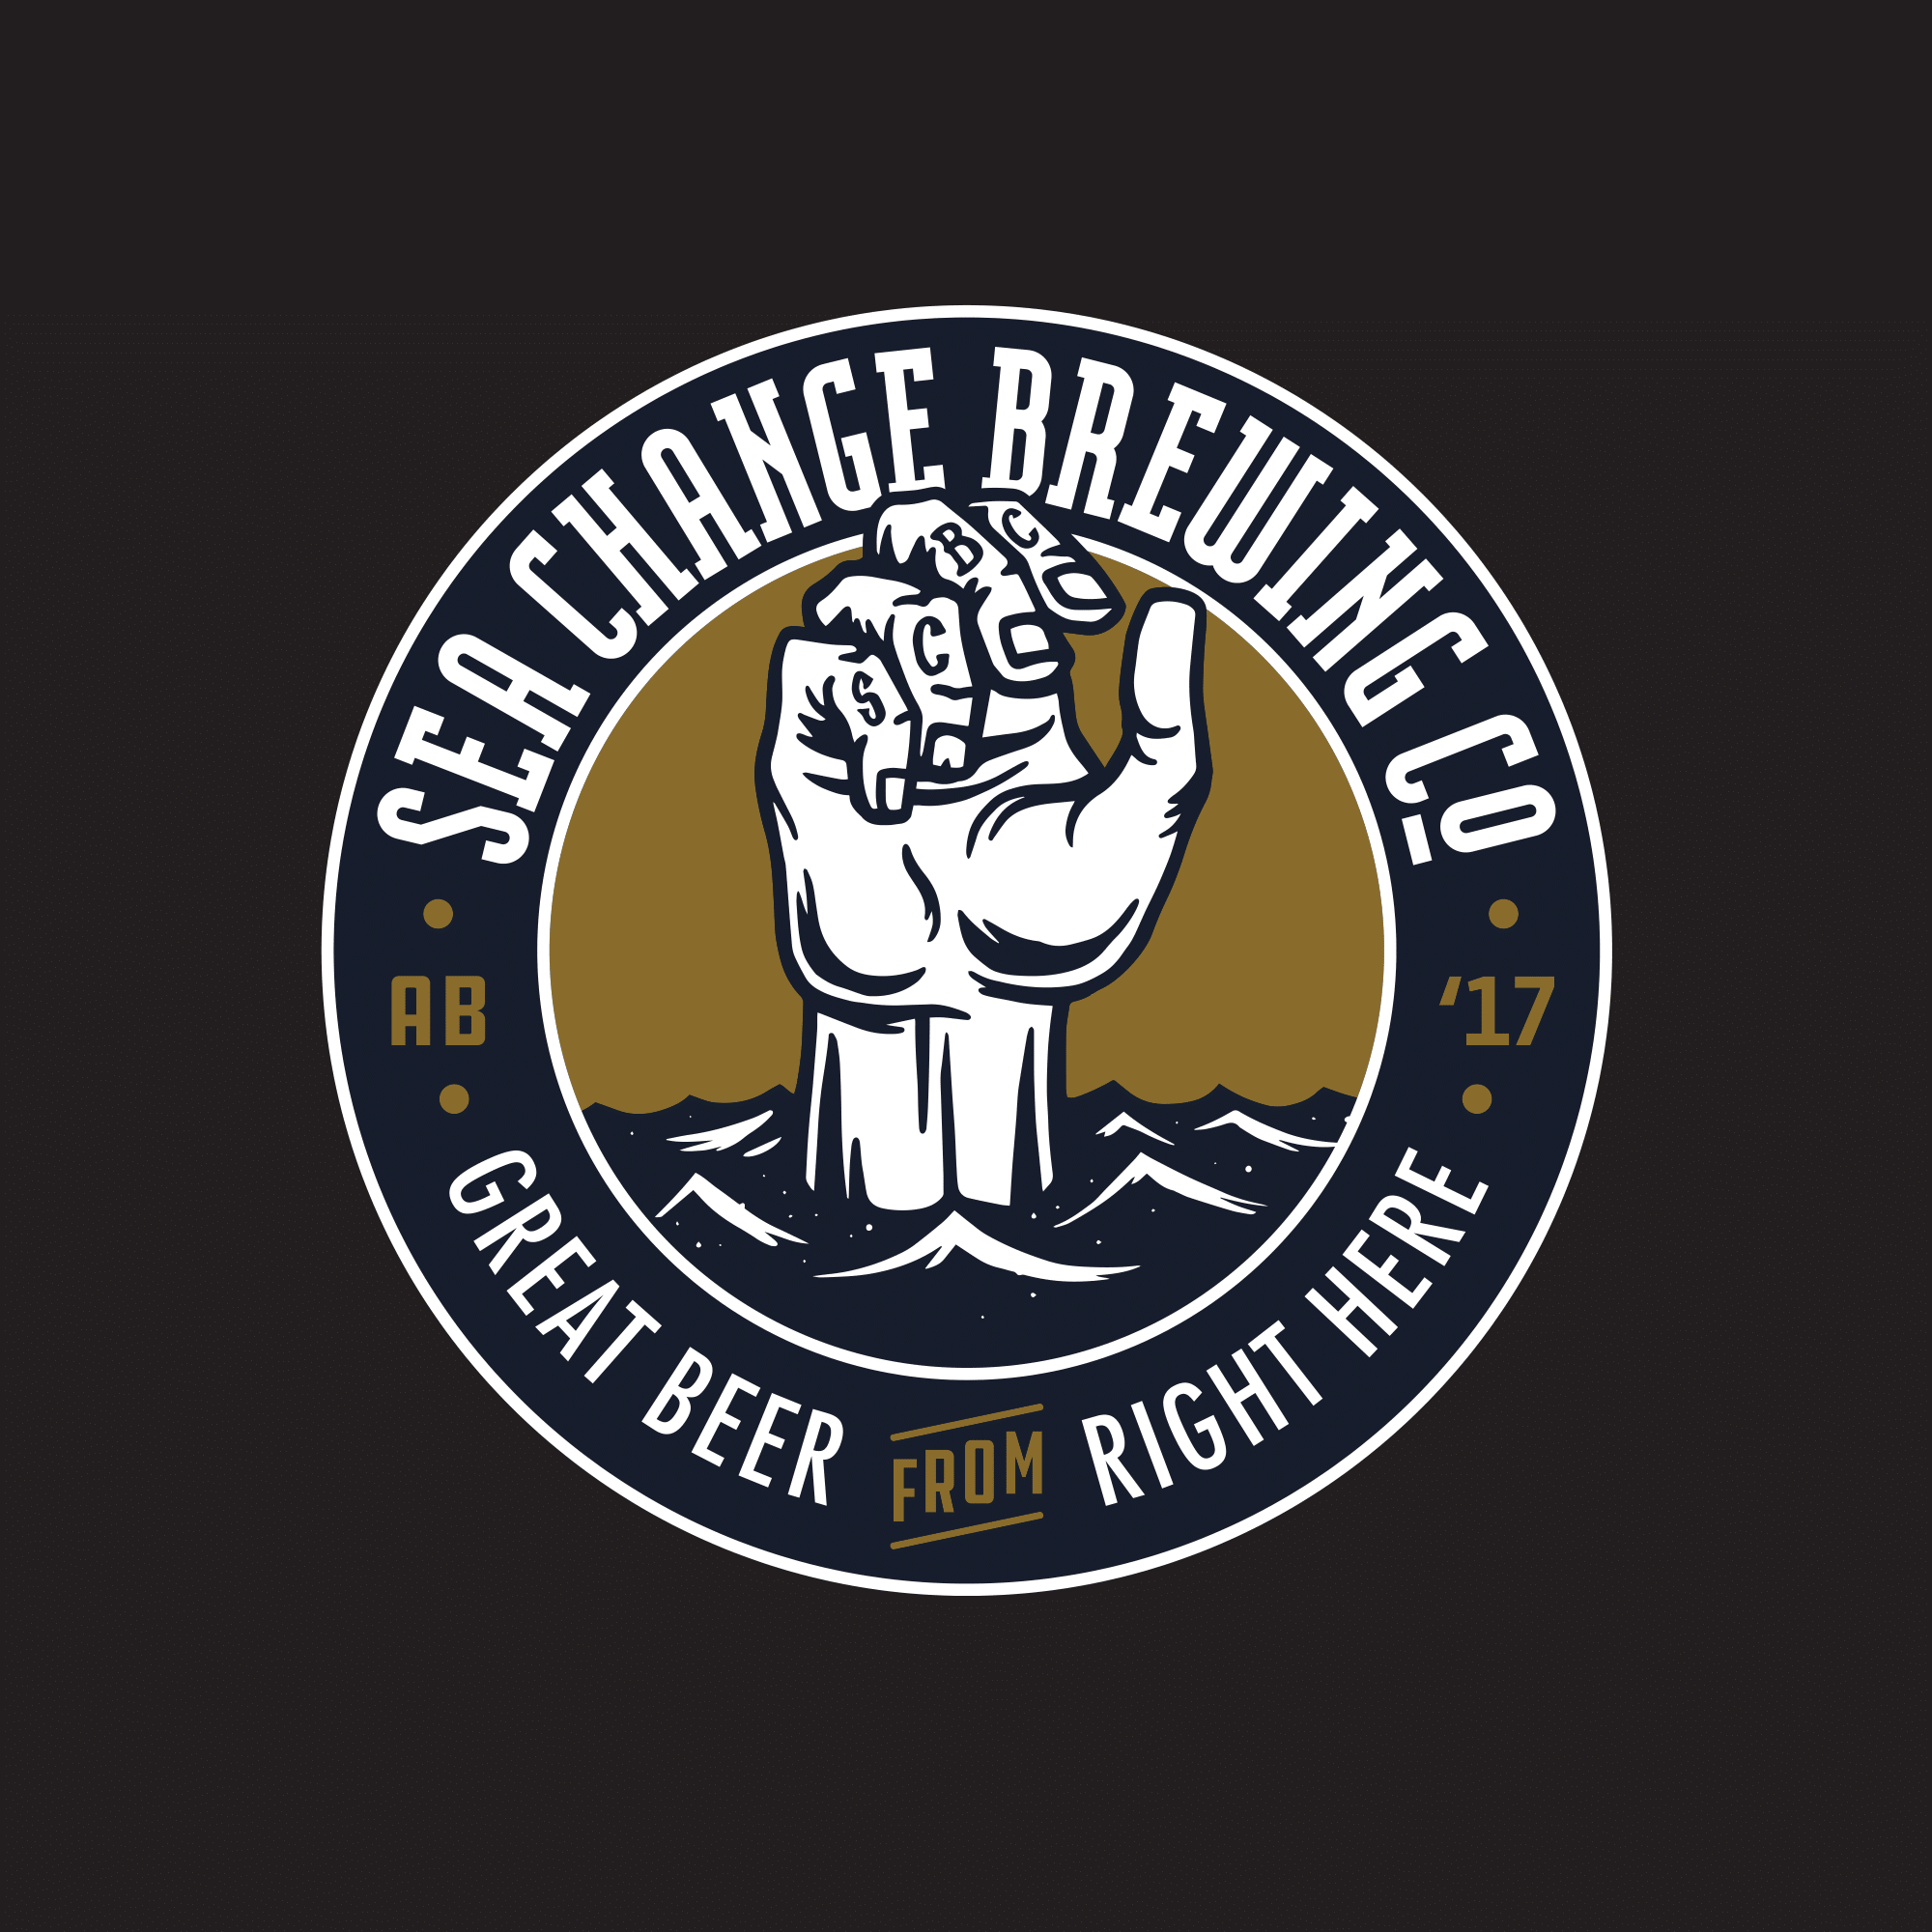 Sea change brewing co. - Craft Beer